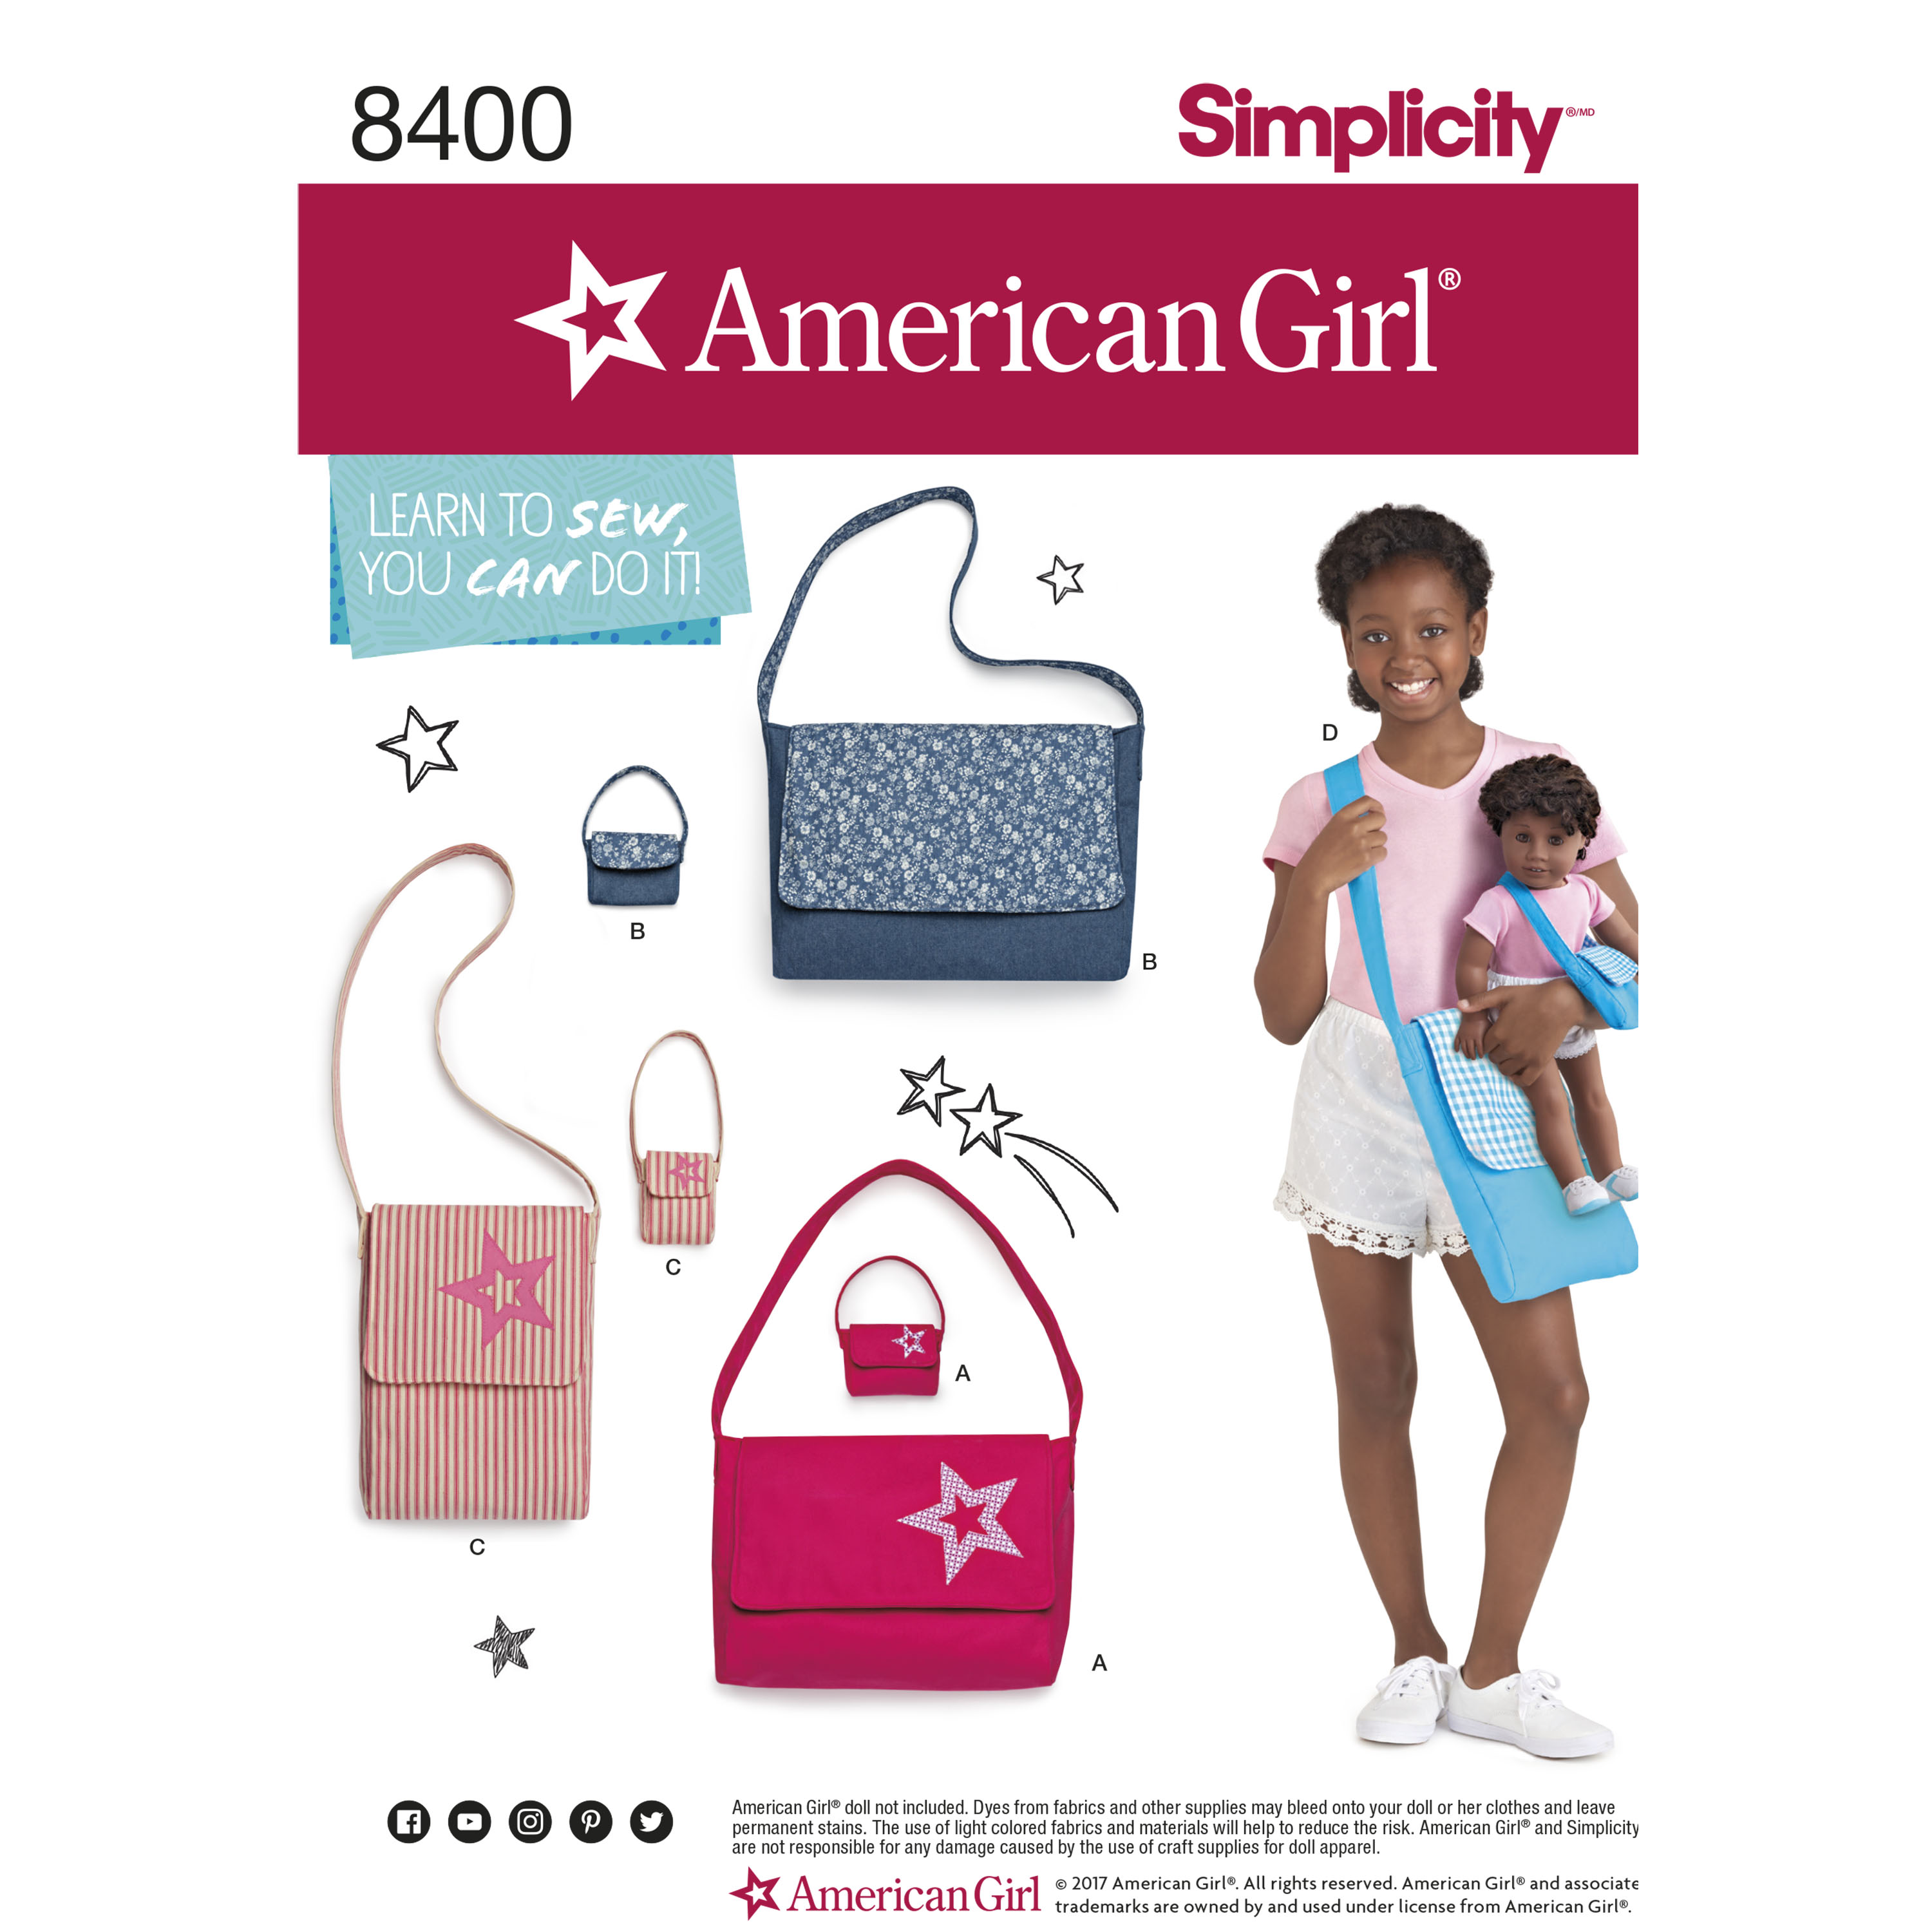 Simplicity 8400 American Girl Learn-To-Sew Bags